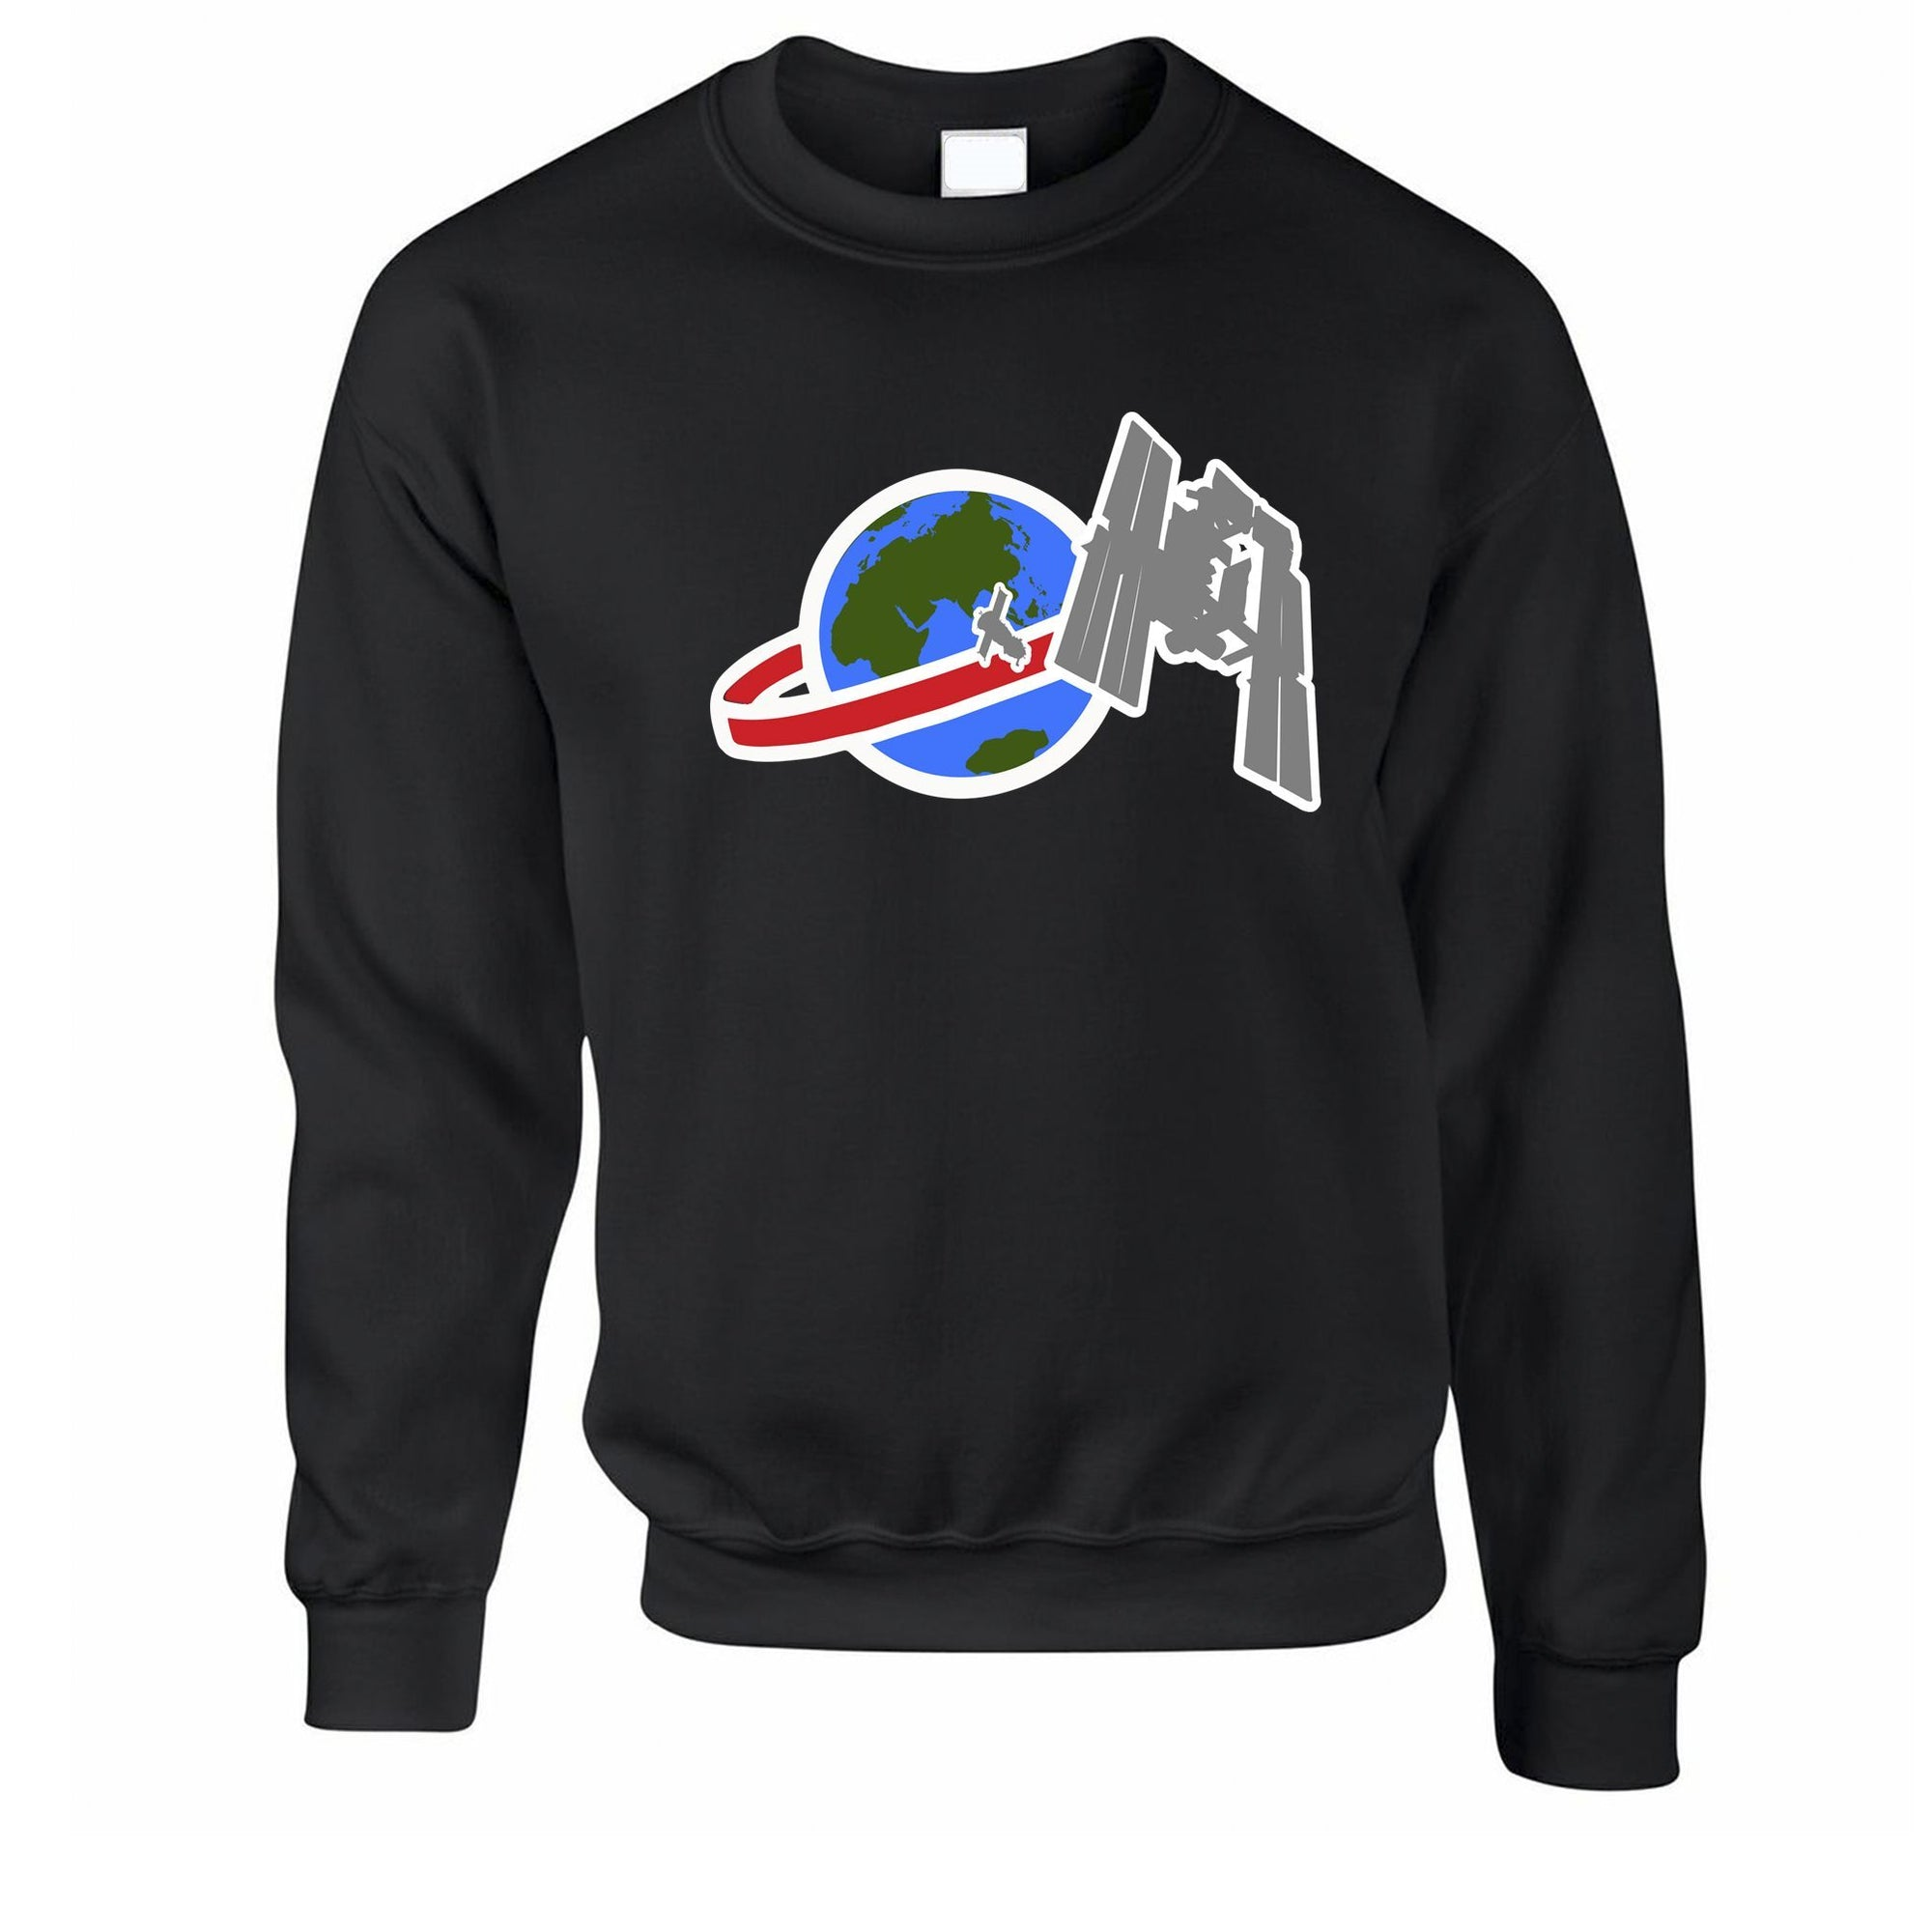 Retro Space Jumper Satellite Over Earth Sweatshirt Sweater